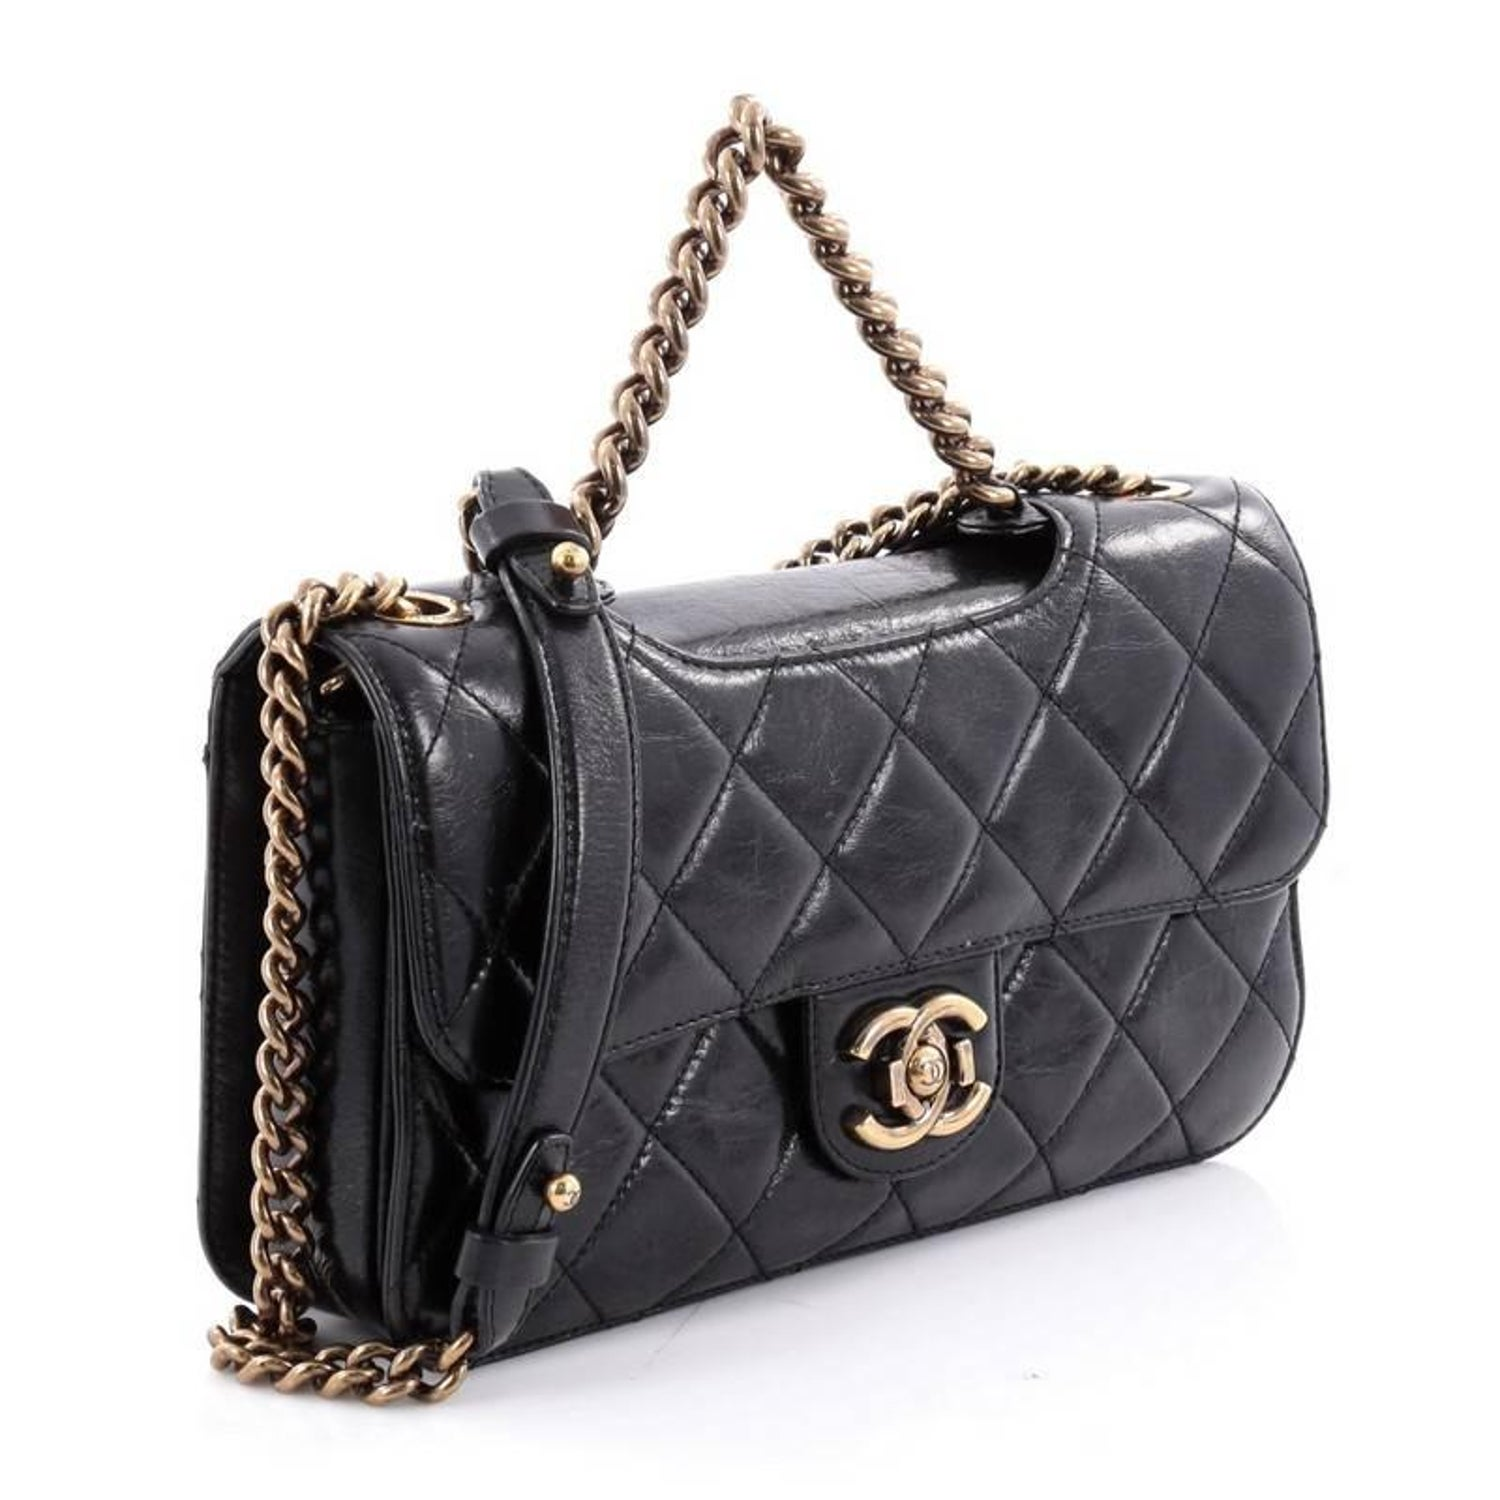 bbff9499aa52 Chanel Perfect Edge Flap Bag Quilted Glazed Calfskin Small at 1stdibs